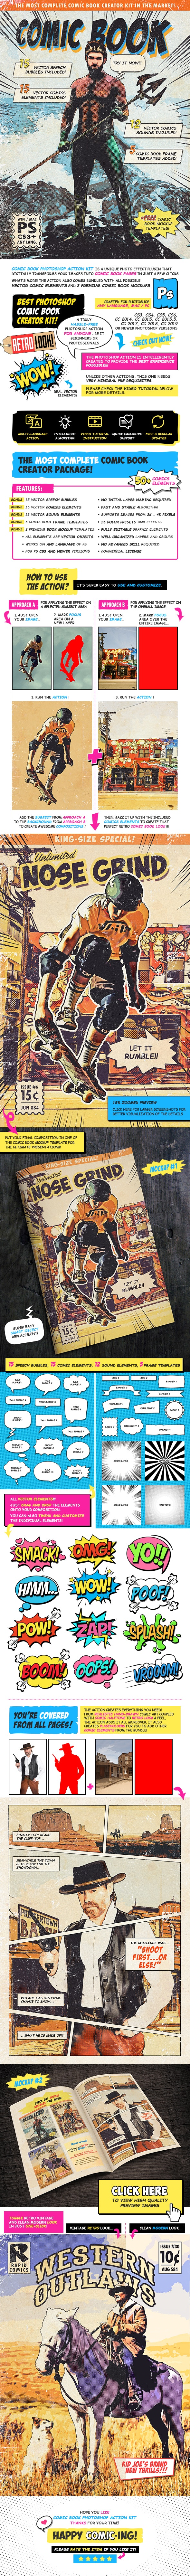 Retro Comic Book Photoshop Action Kit by IndWorks | GraphicRiver